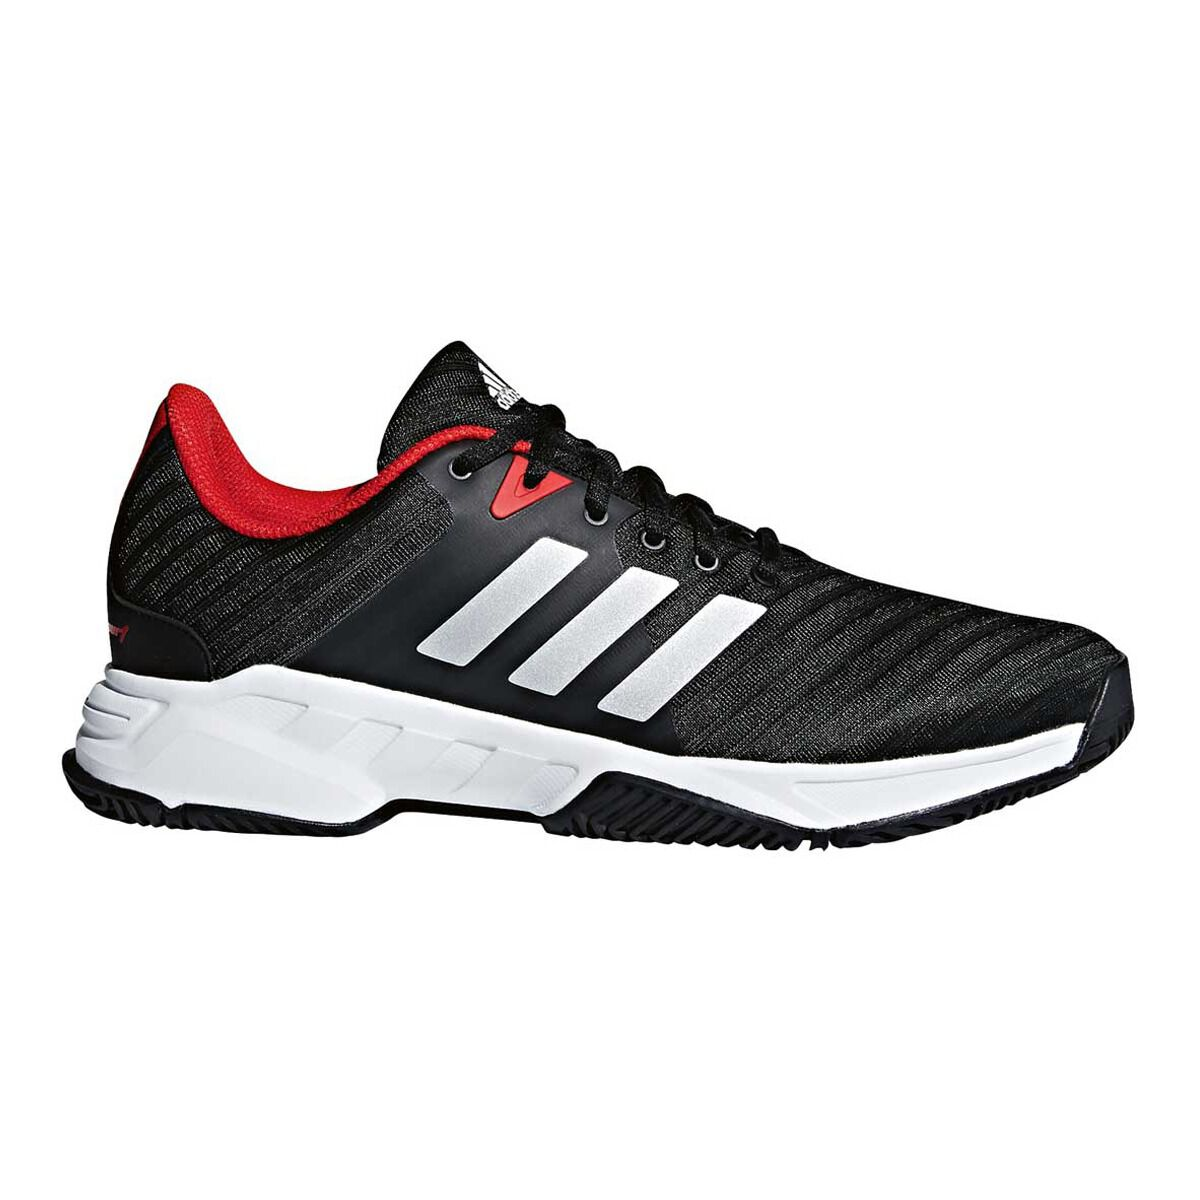 adidas Barricade Court 3 men's tennispaddle tennis shoes